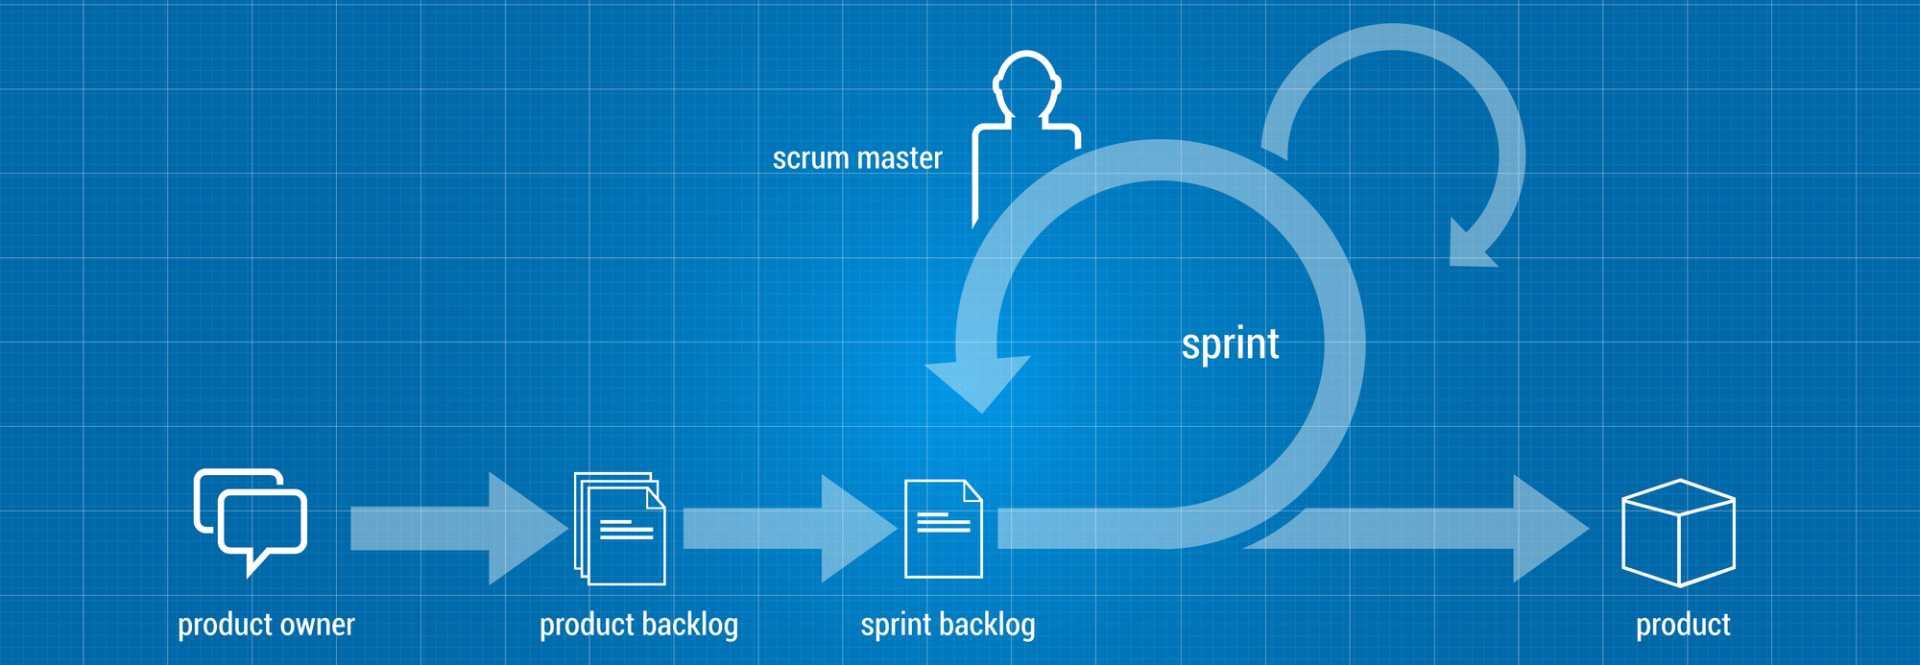 Innovation Scrum Methodology Cycle - image courtesy of Depositphotos.